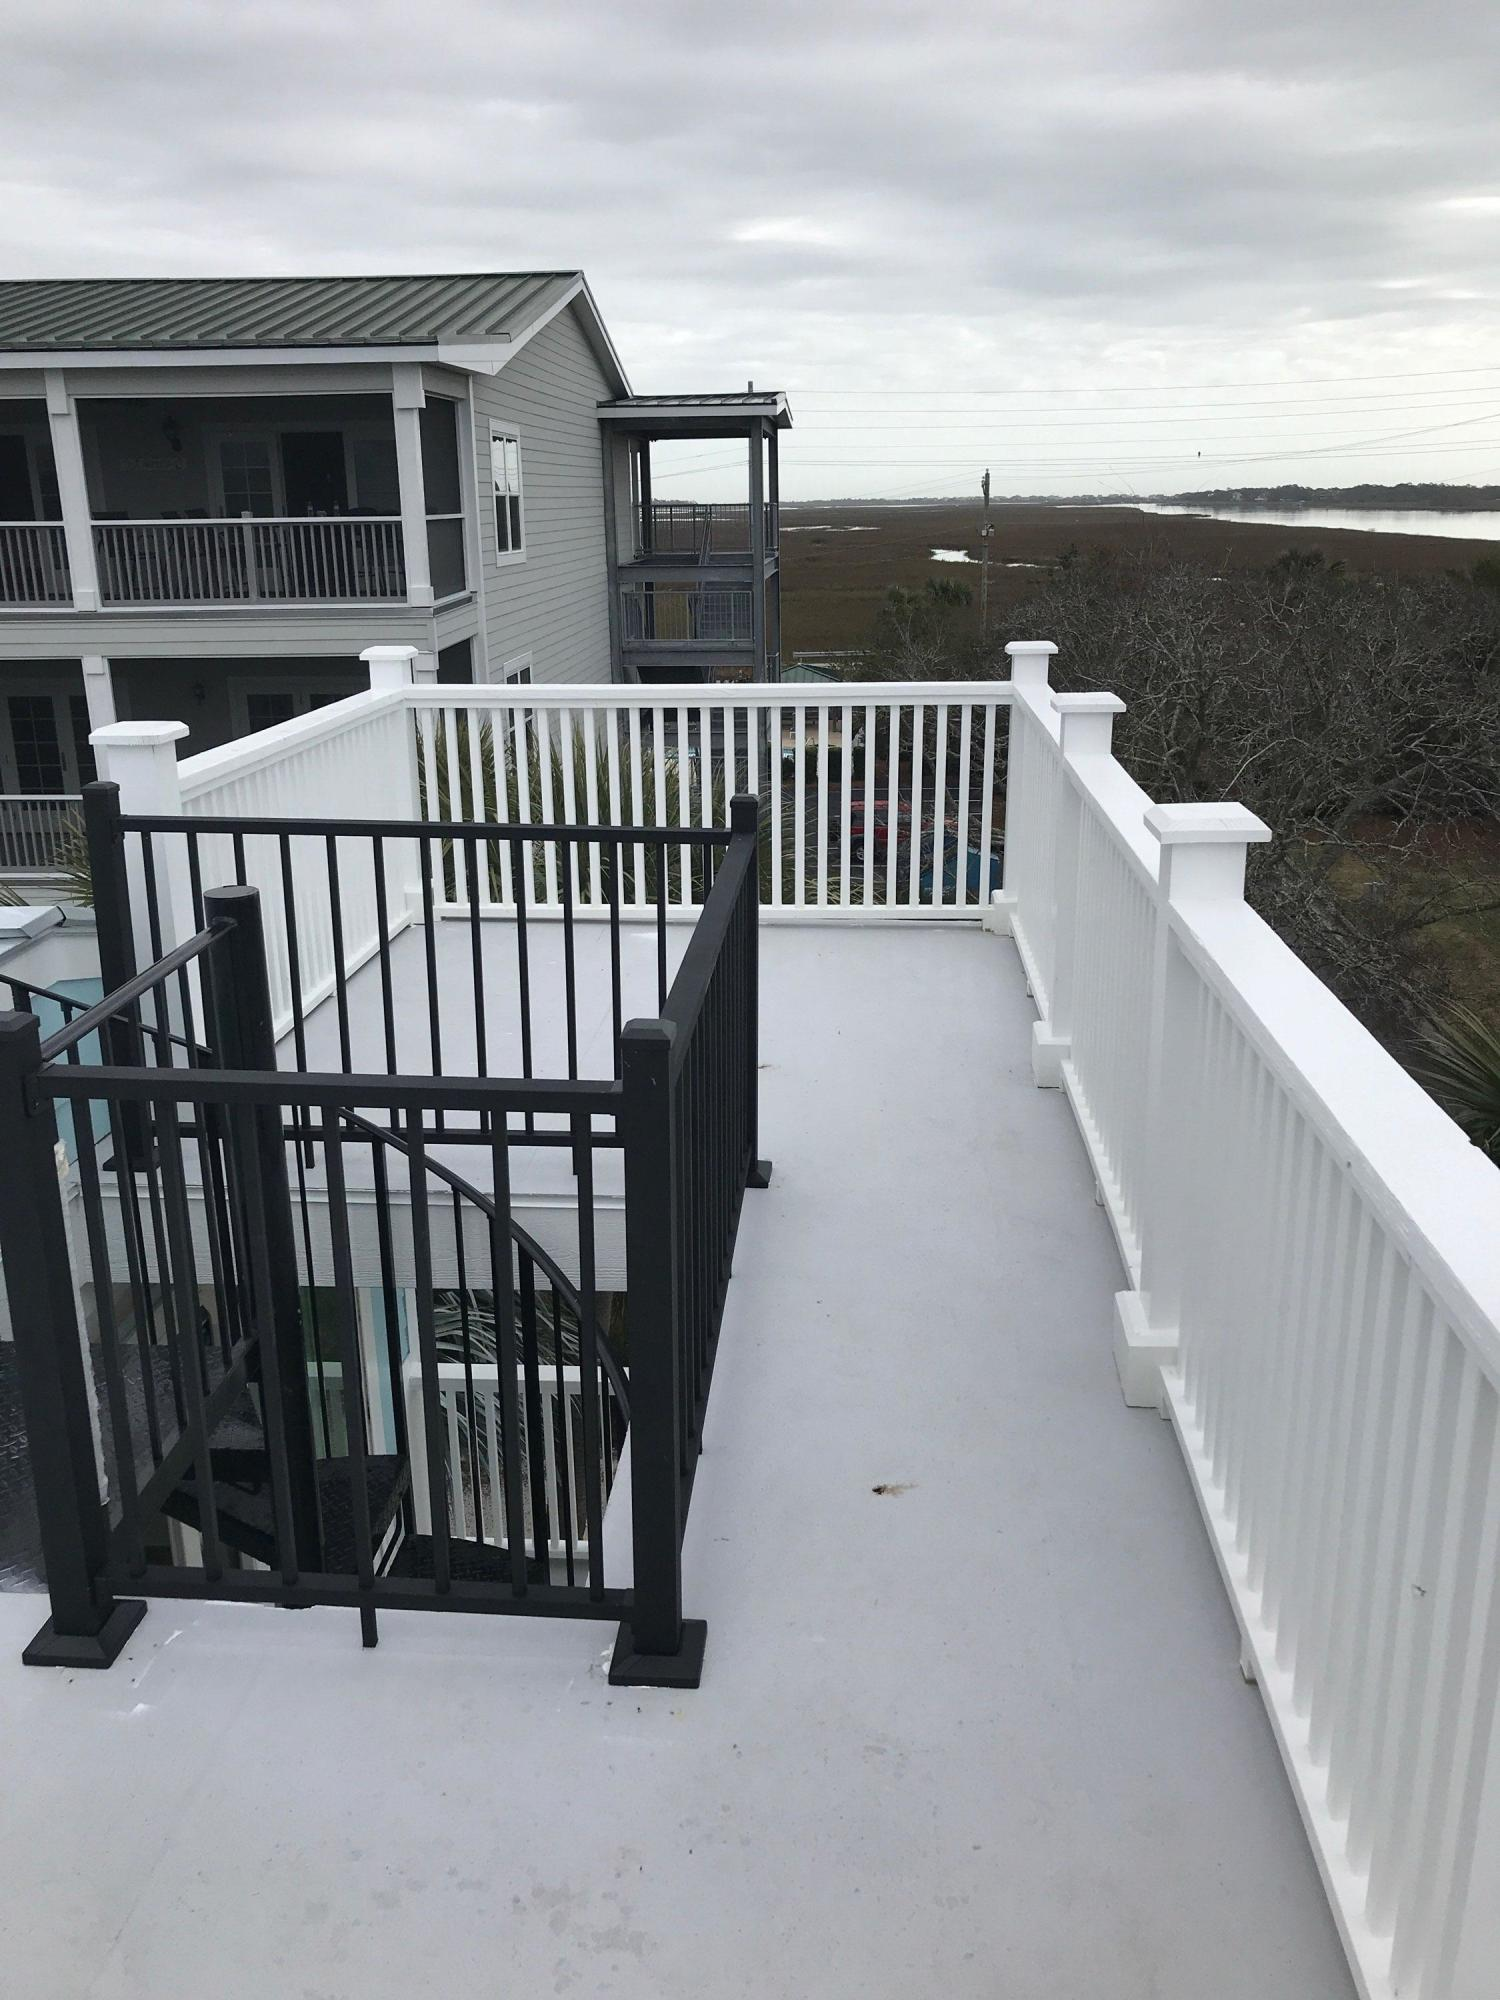 Mariners Cay Homes For Sale - 1004 Mariners Cay, Folly Beach, SC - 0